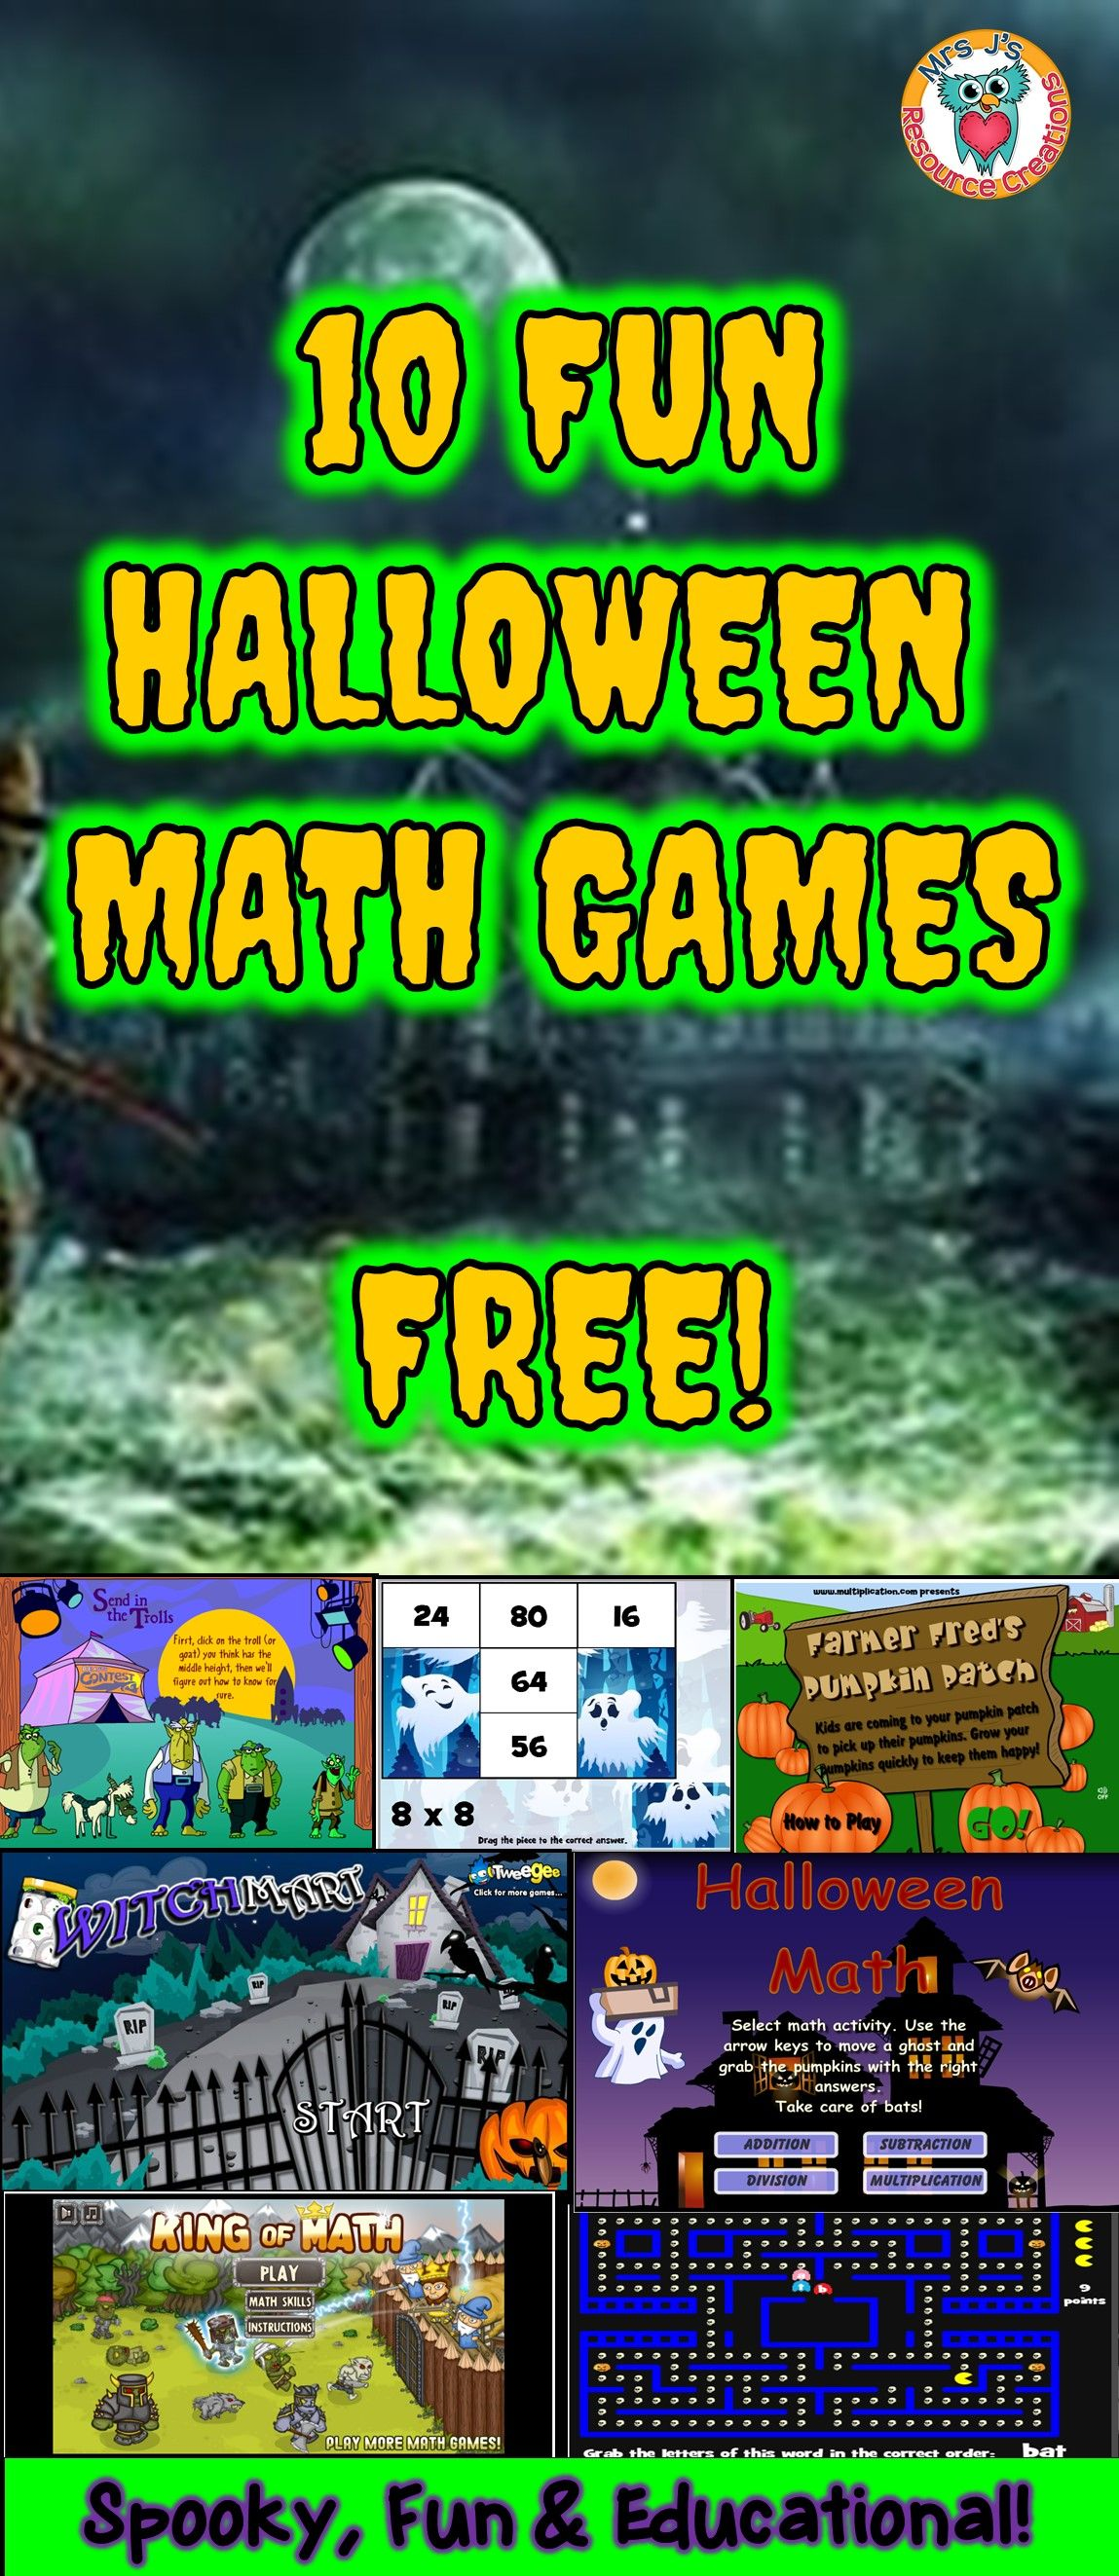 Halloween Math Games to play online for FREE! Halloween